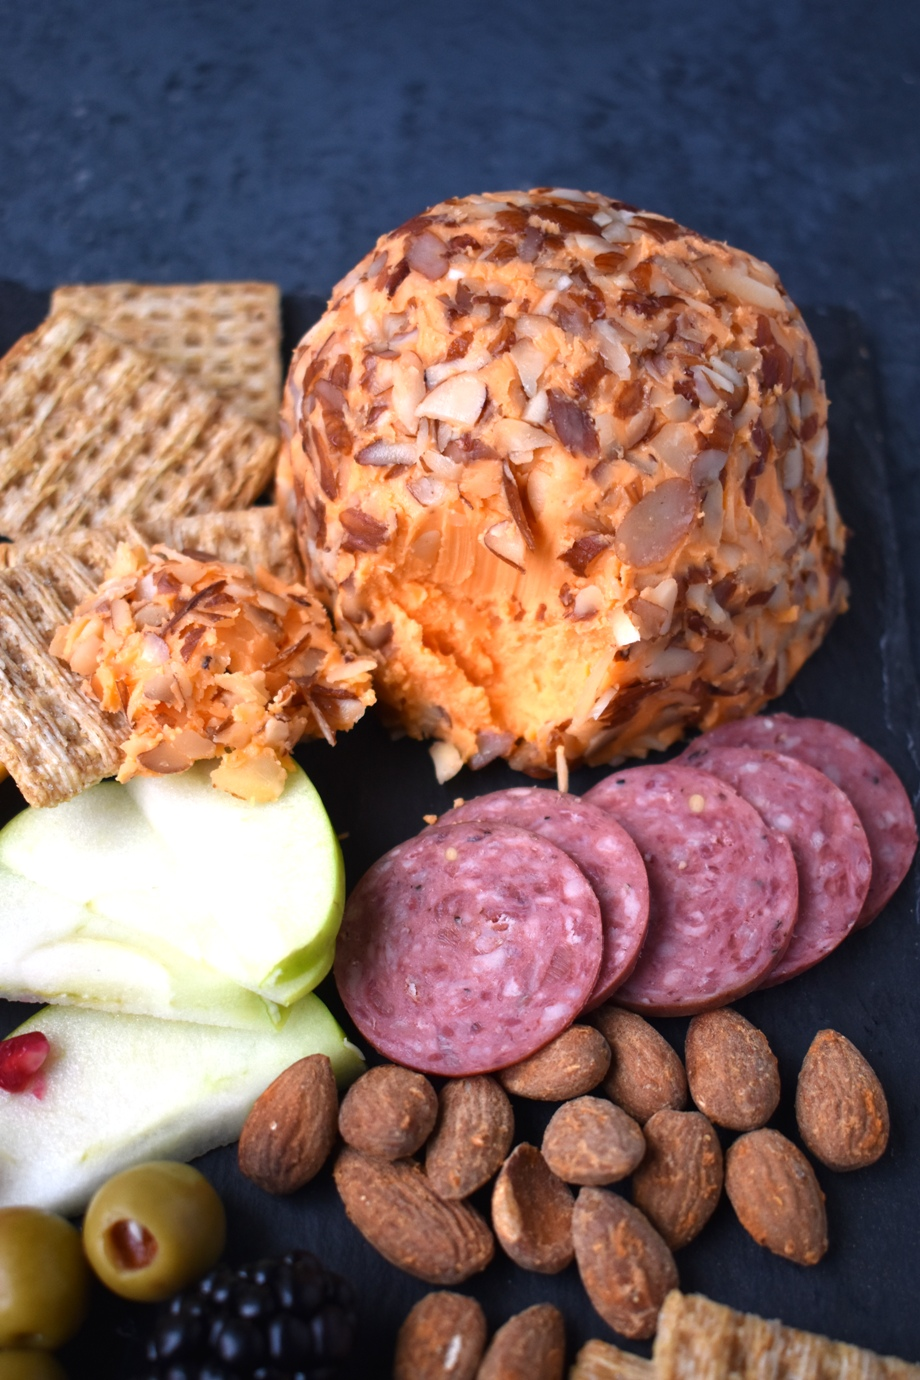 Kaukauna Sharp Cheddar Cheese Ball